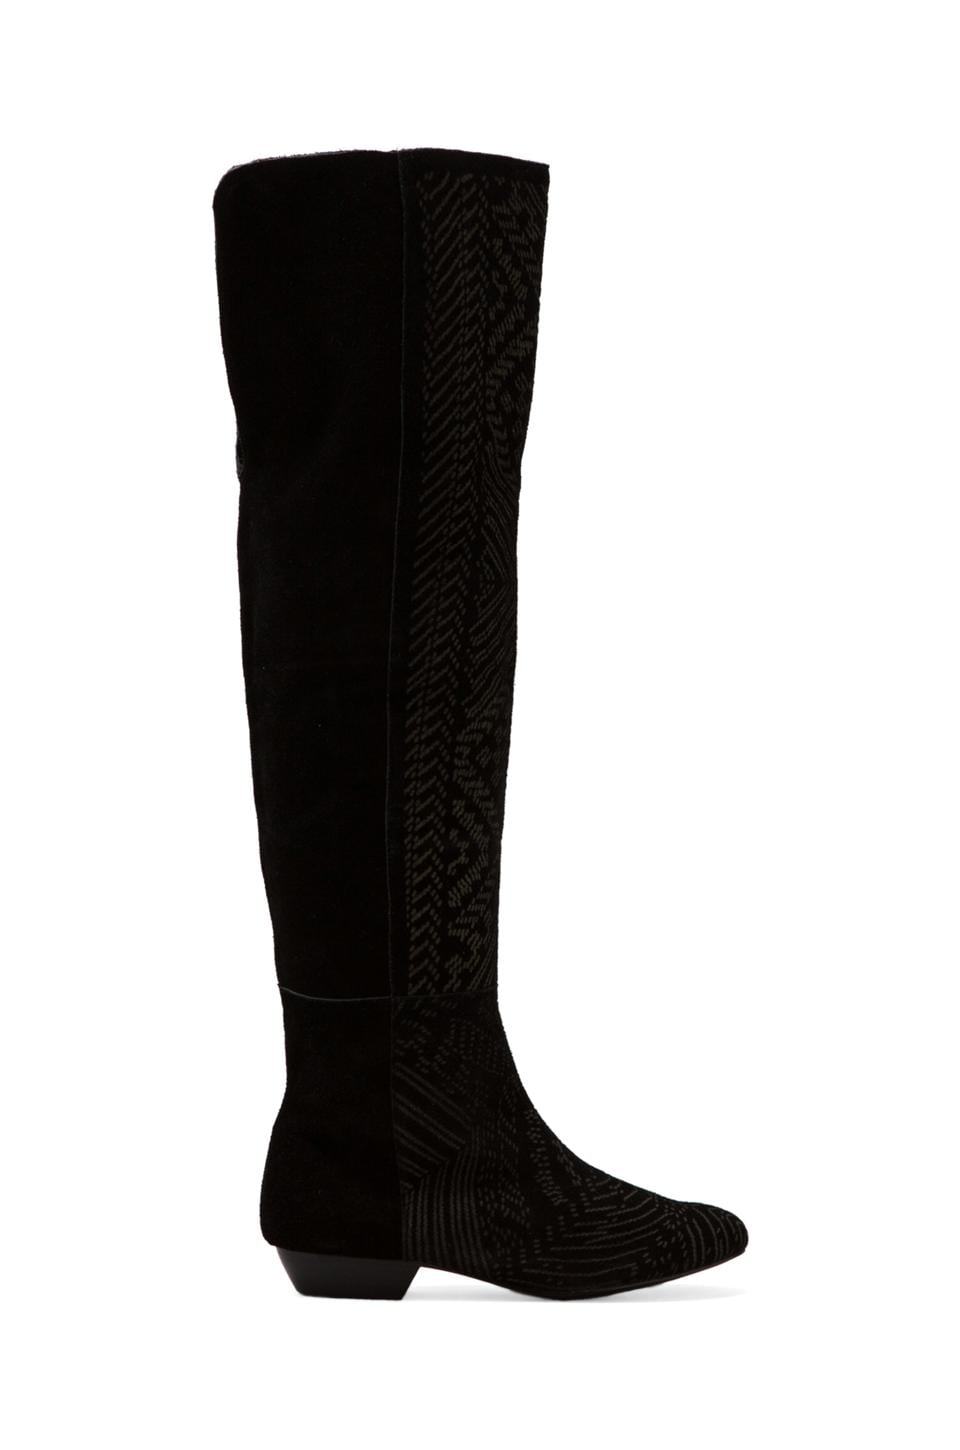 Twelfth Street By Cynthia Vincent Daire Over-The-Knee Etched Suede Boot in Black